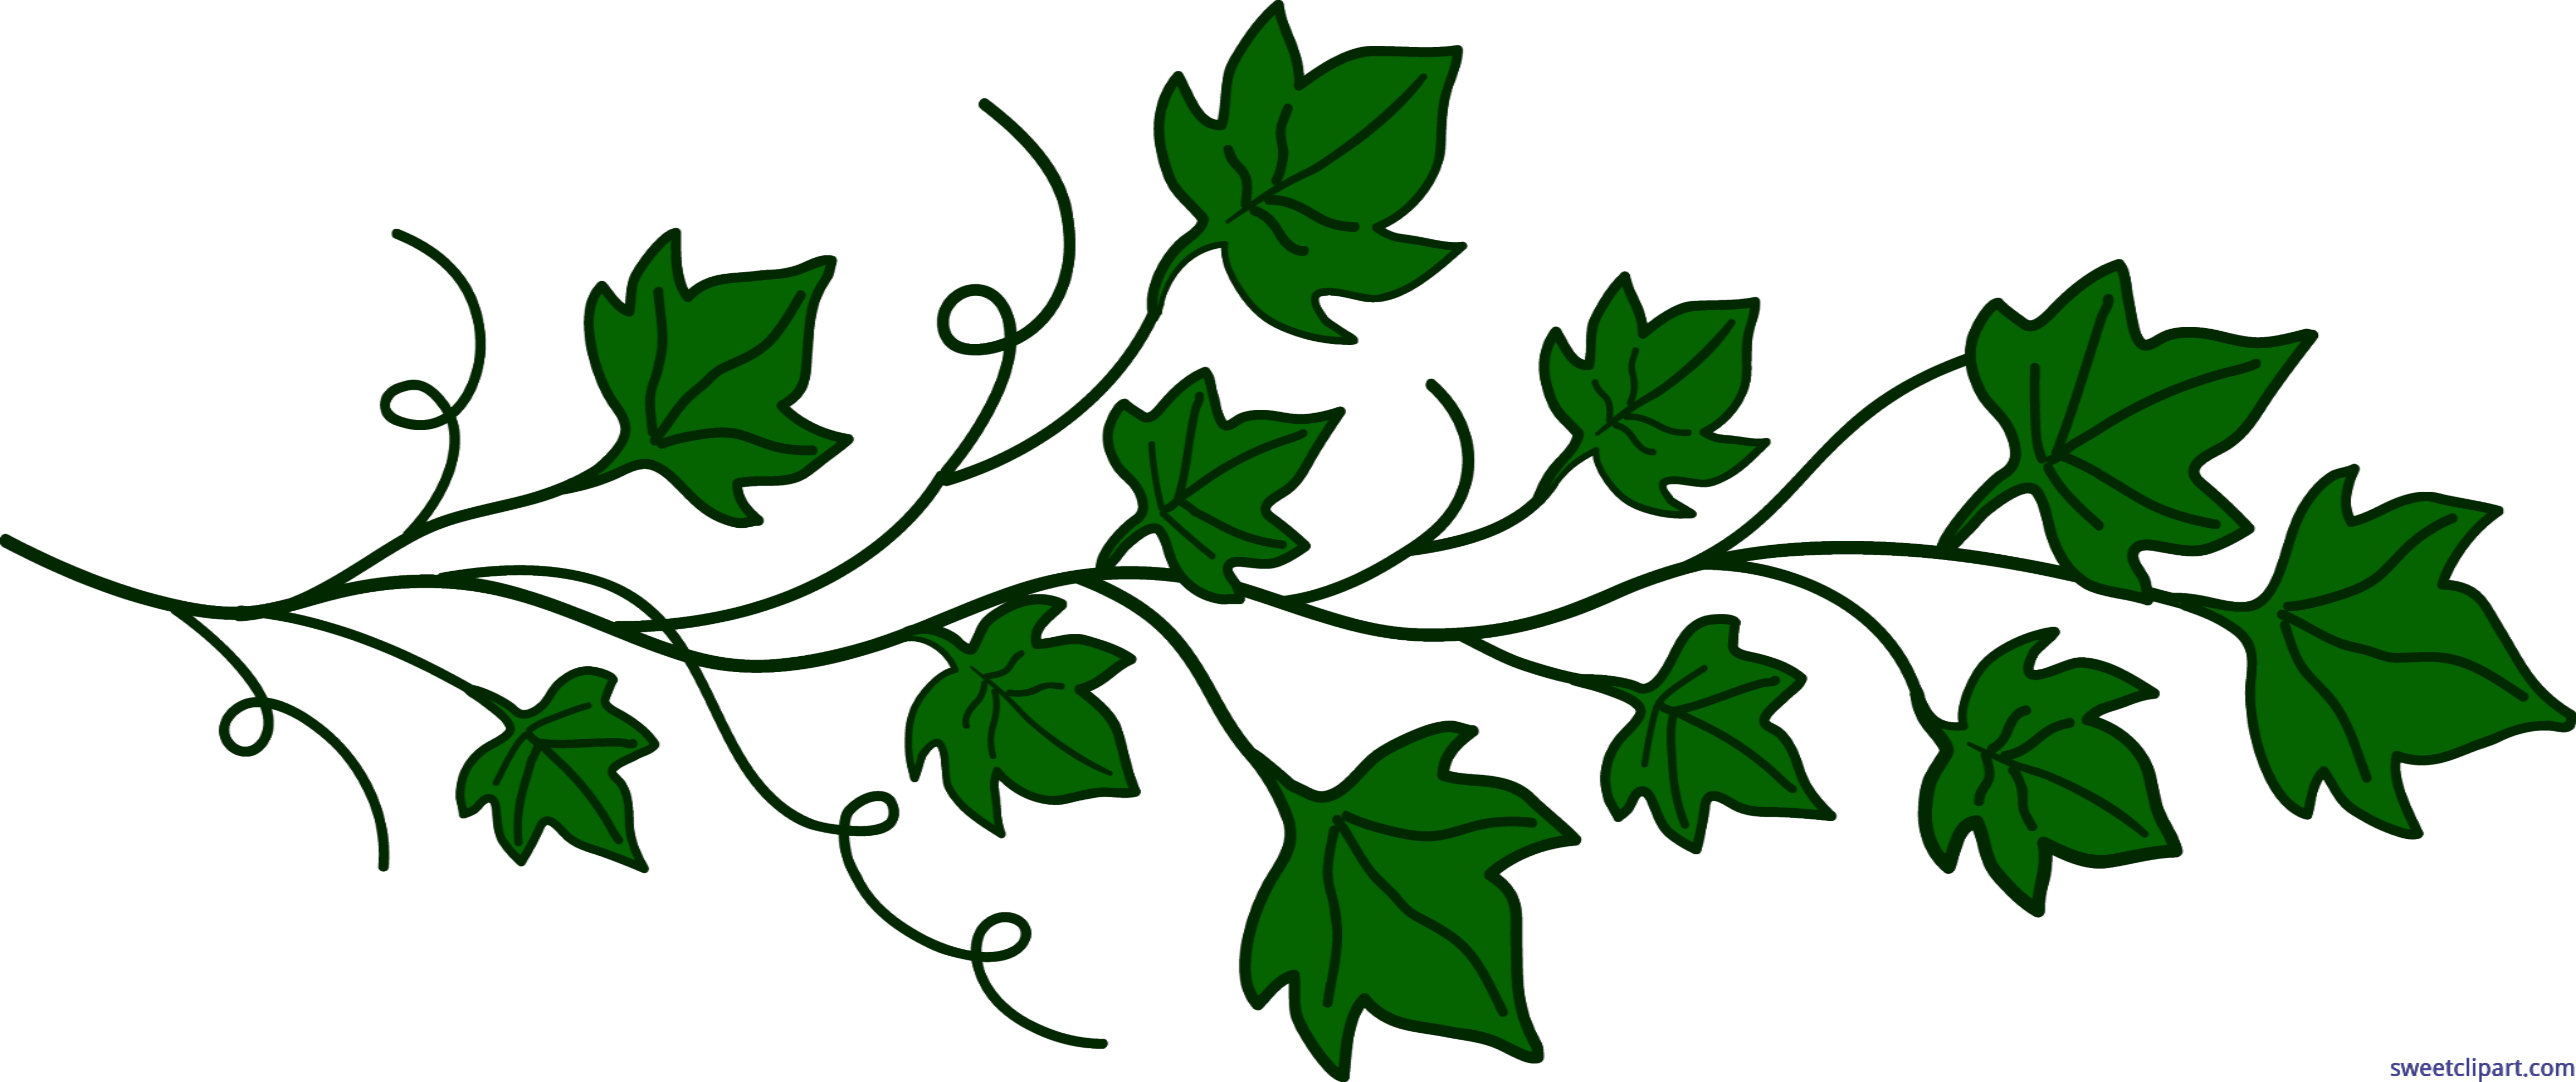 Ivy flower clipart picture freeuse stock Ivy Clip Art - Sweet Clip Art picture freeuse stock